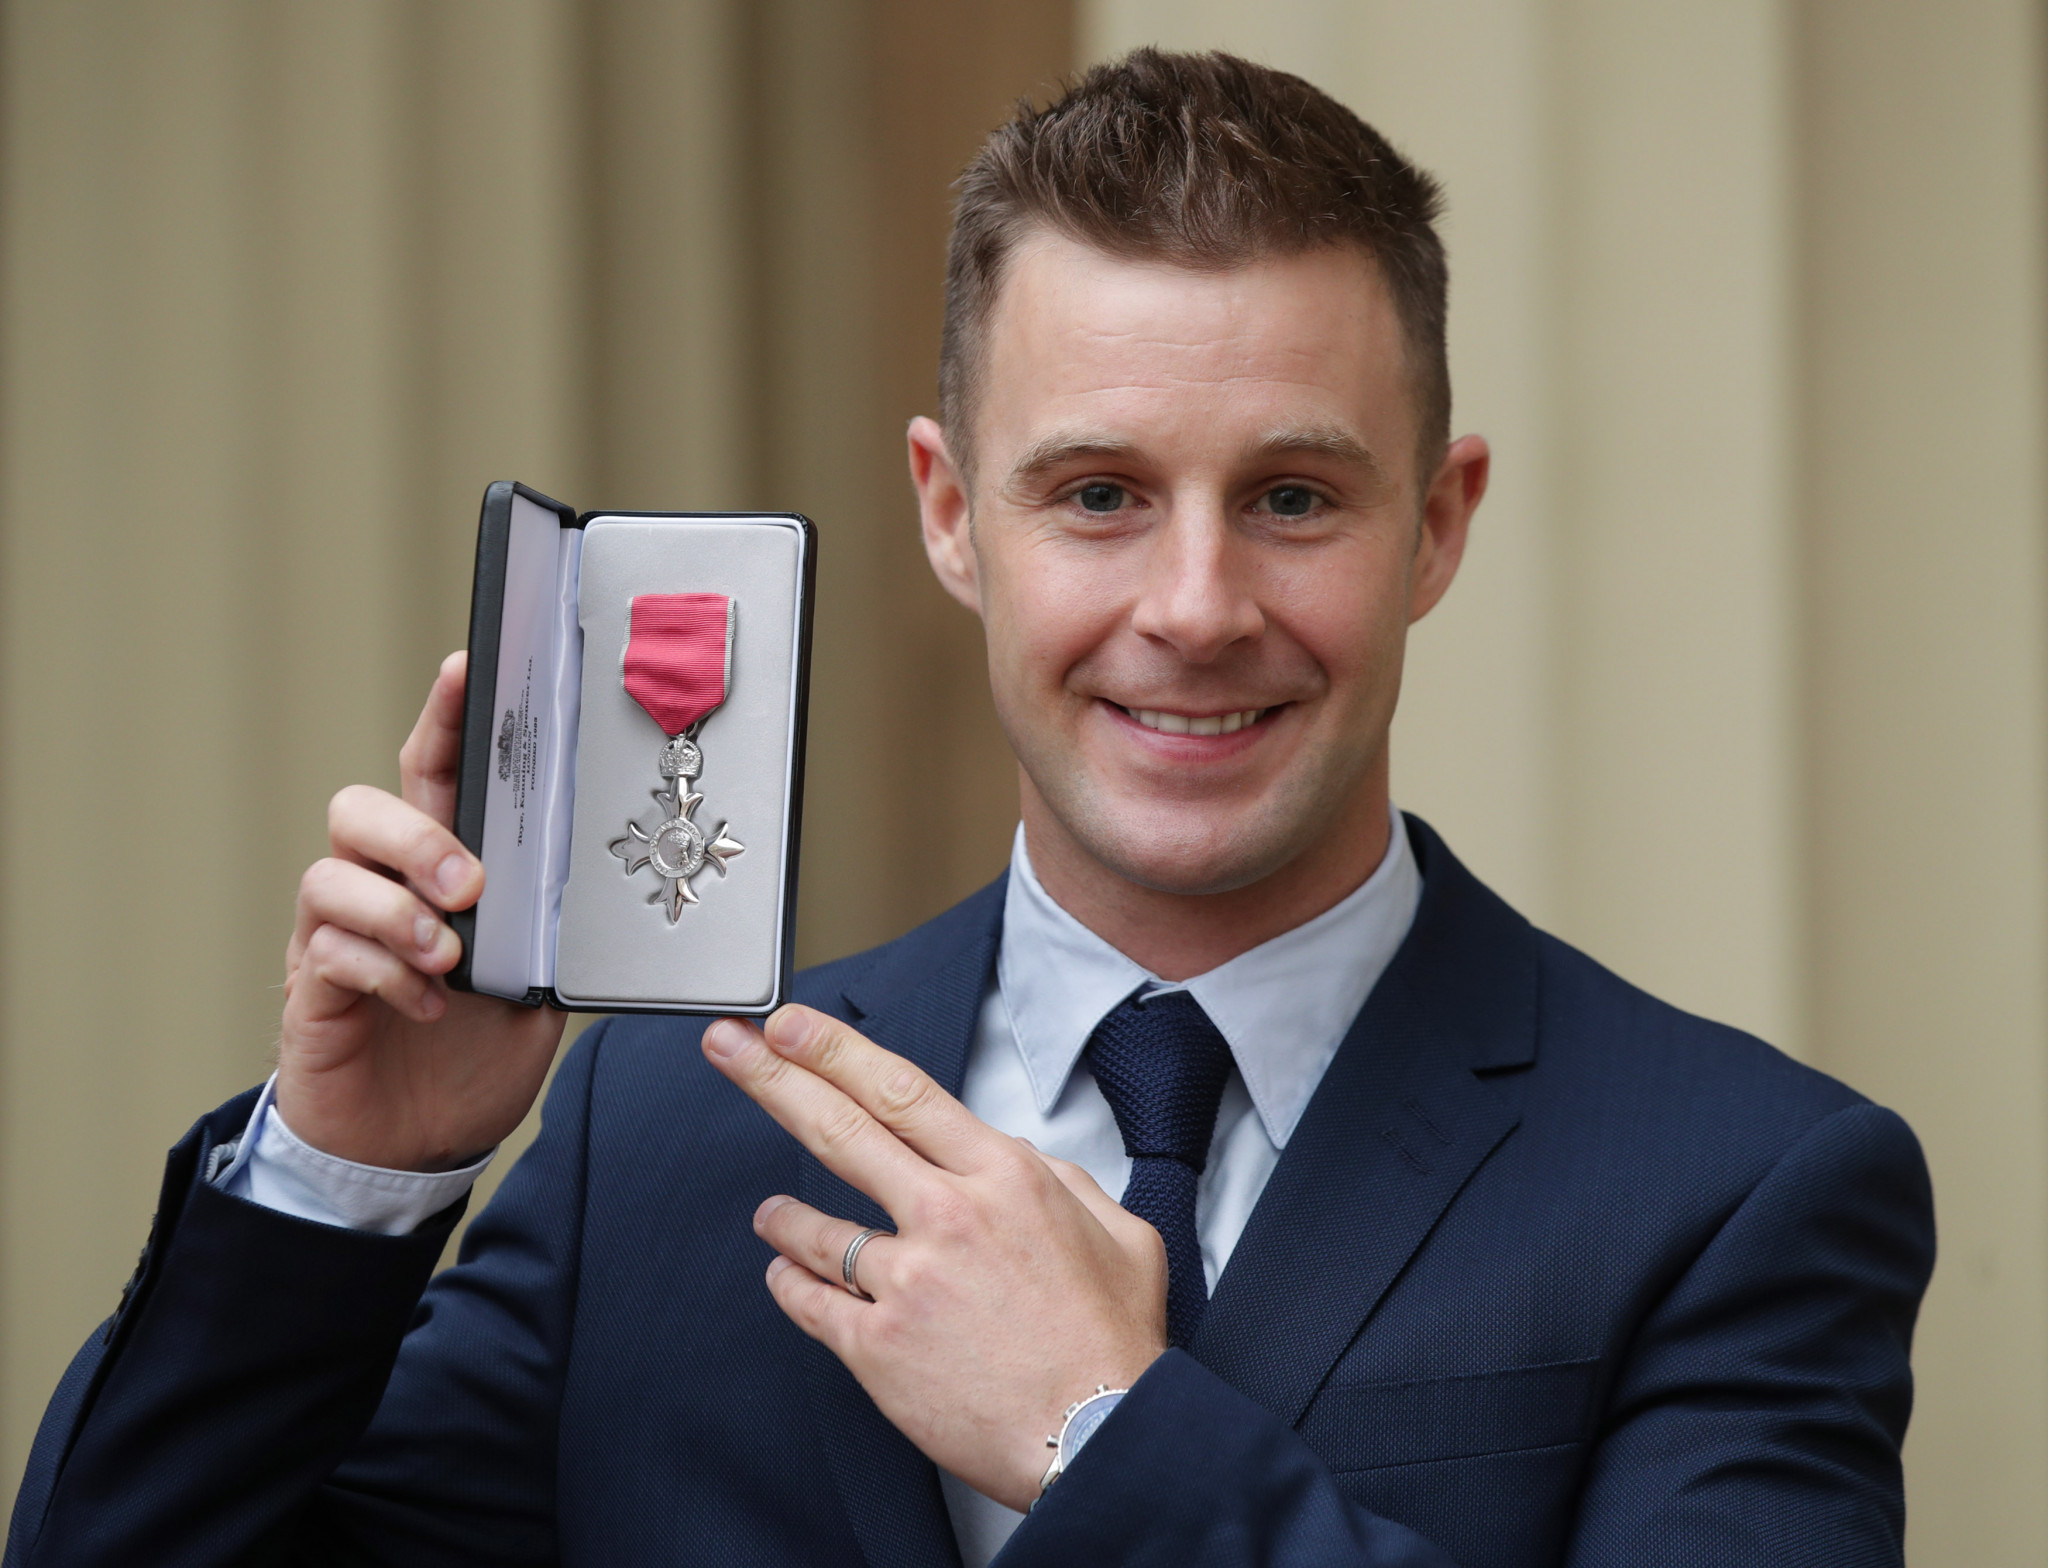 Superbike world champion Jonathan Rea. Who? Rea came a surprise second in the BBC poll and it wasn't his only success this year as he poses after being presented with an MBE by the Duke of Cambridge at Buckingham Palace last month ©Getty Images